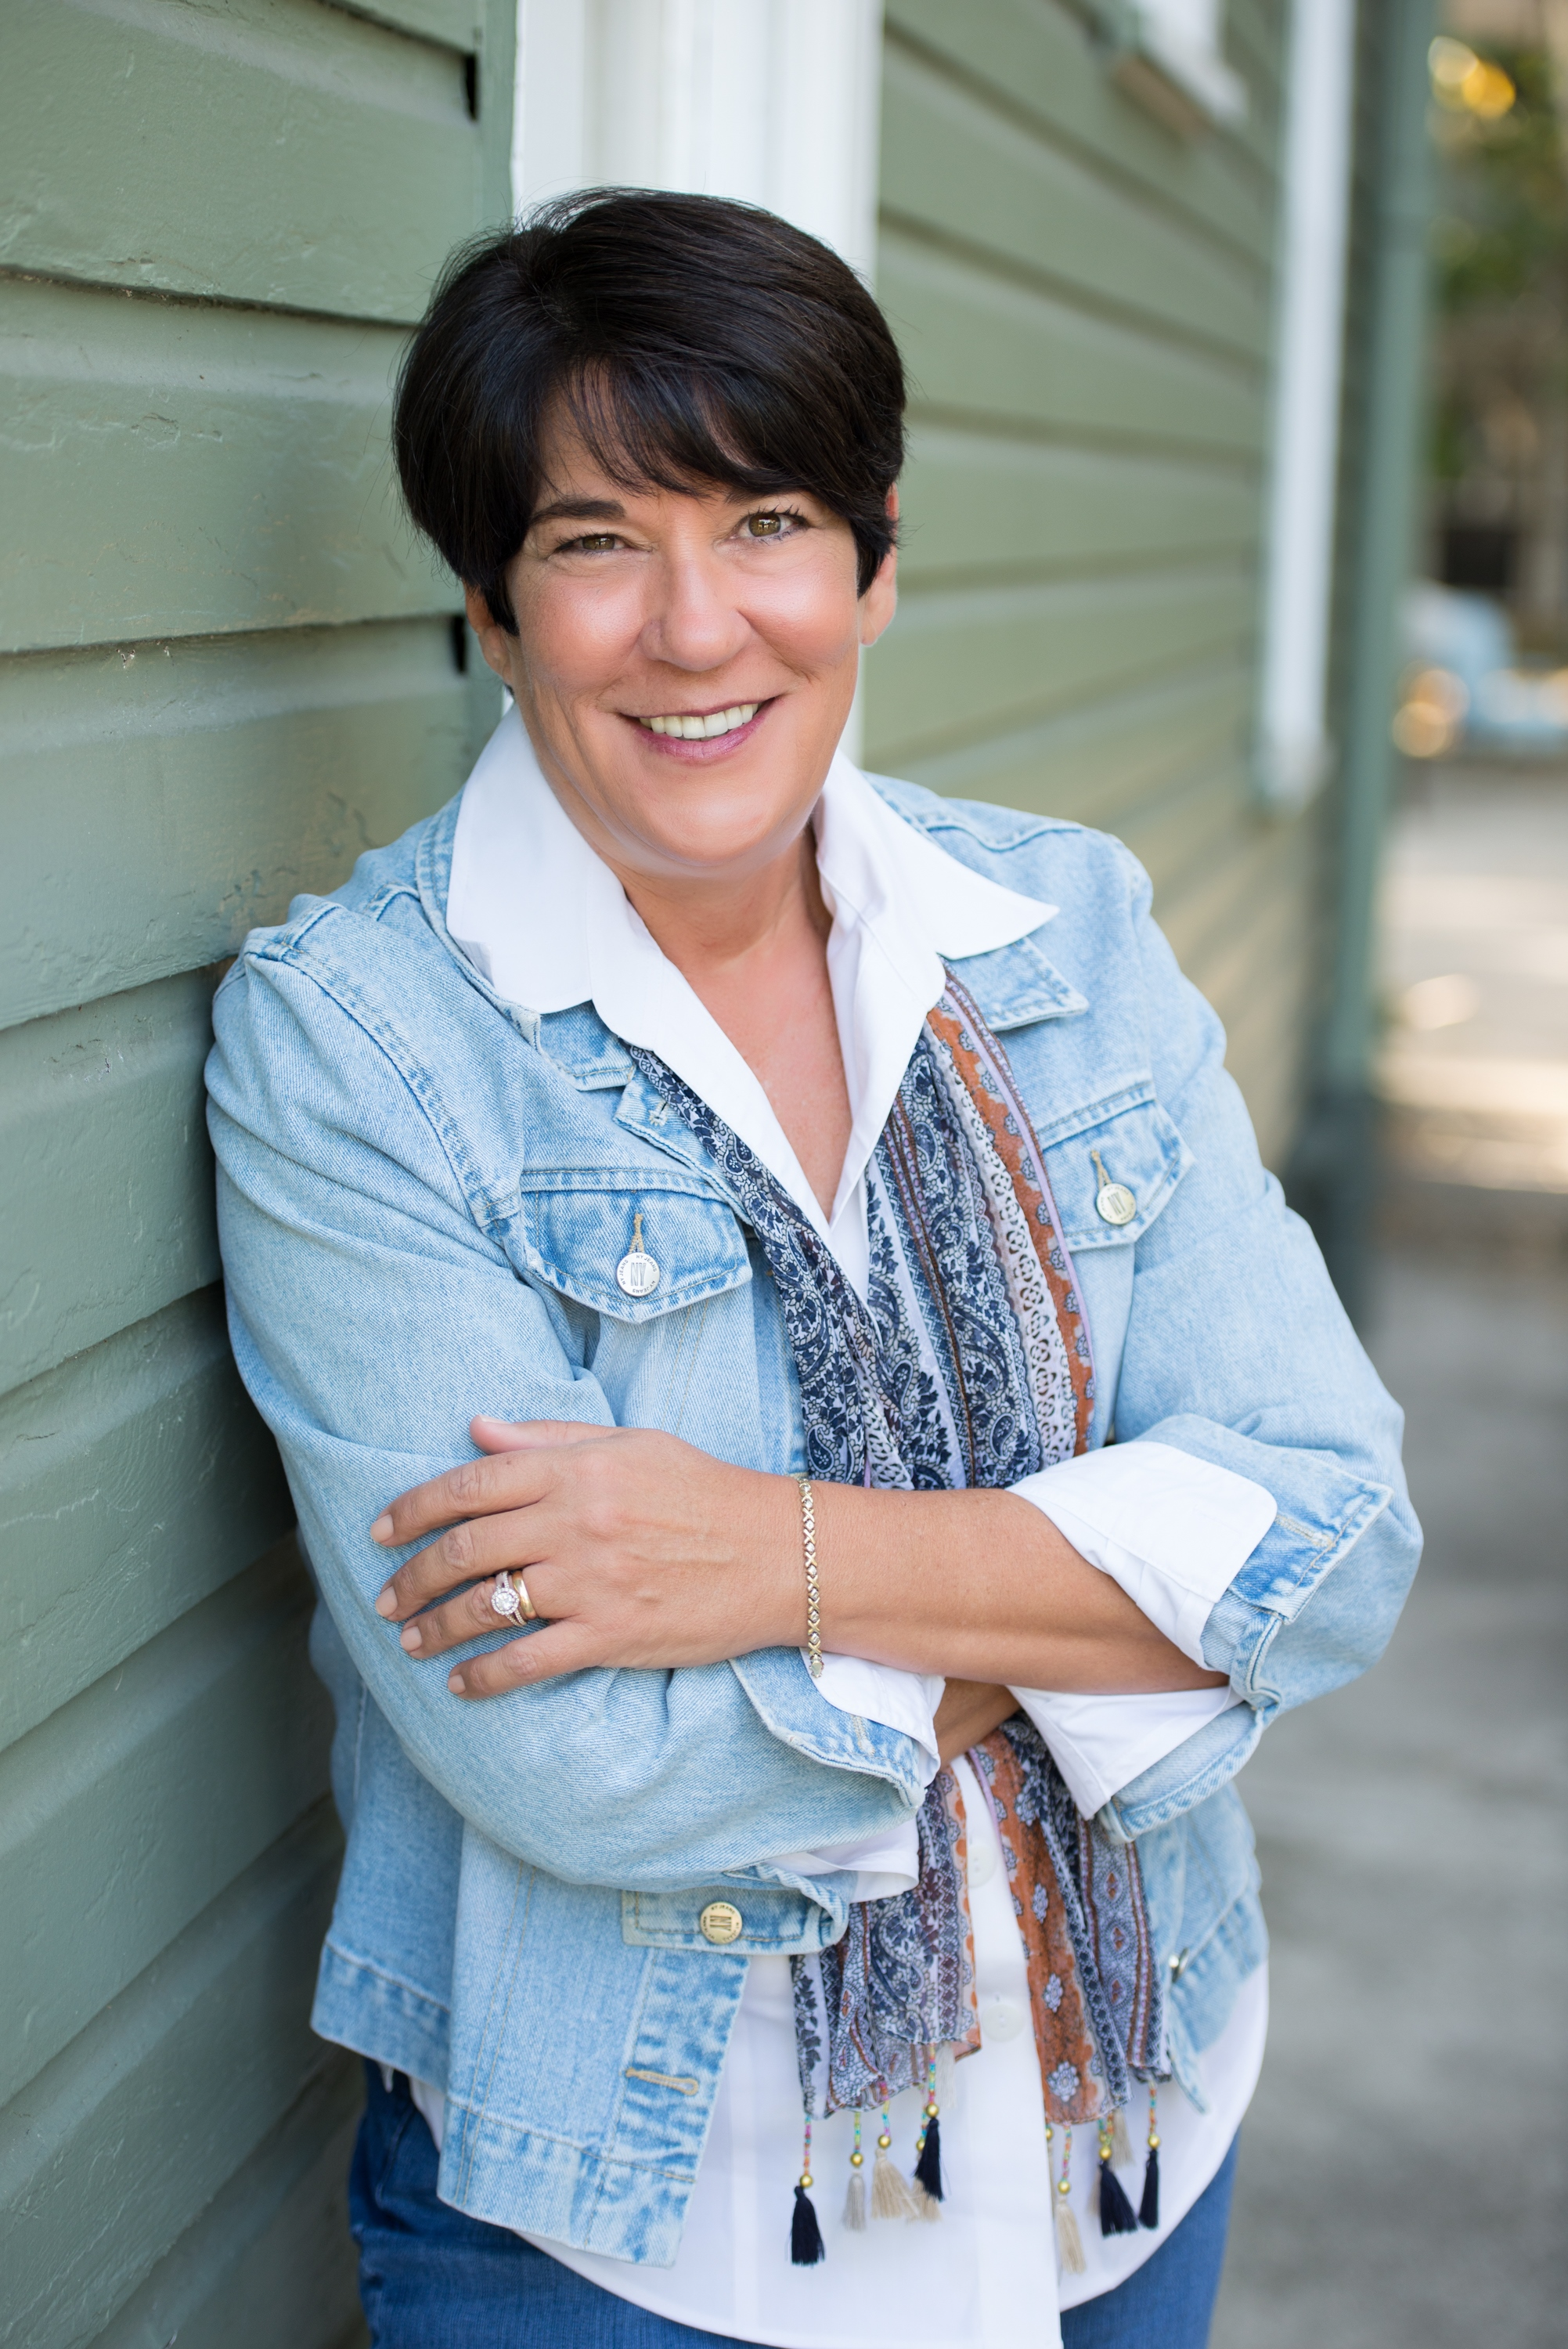 Colleen D. Scott - I love to read outside on my lanai at home and at the beach whenever I get the opportunity.